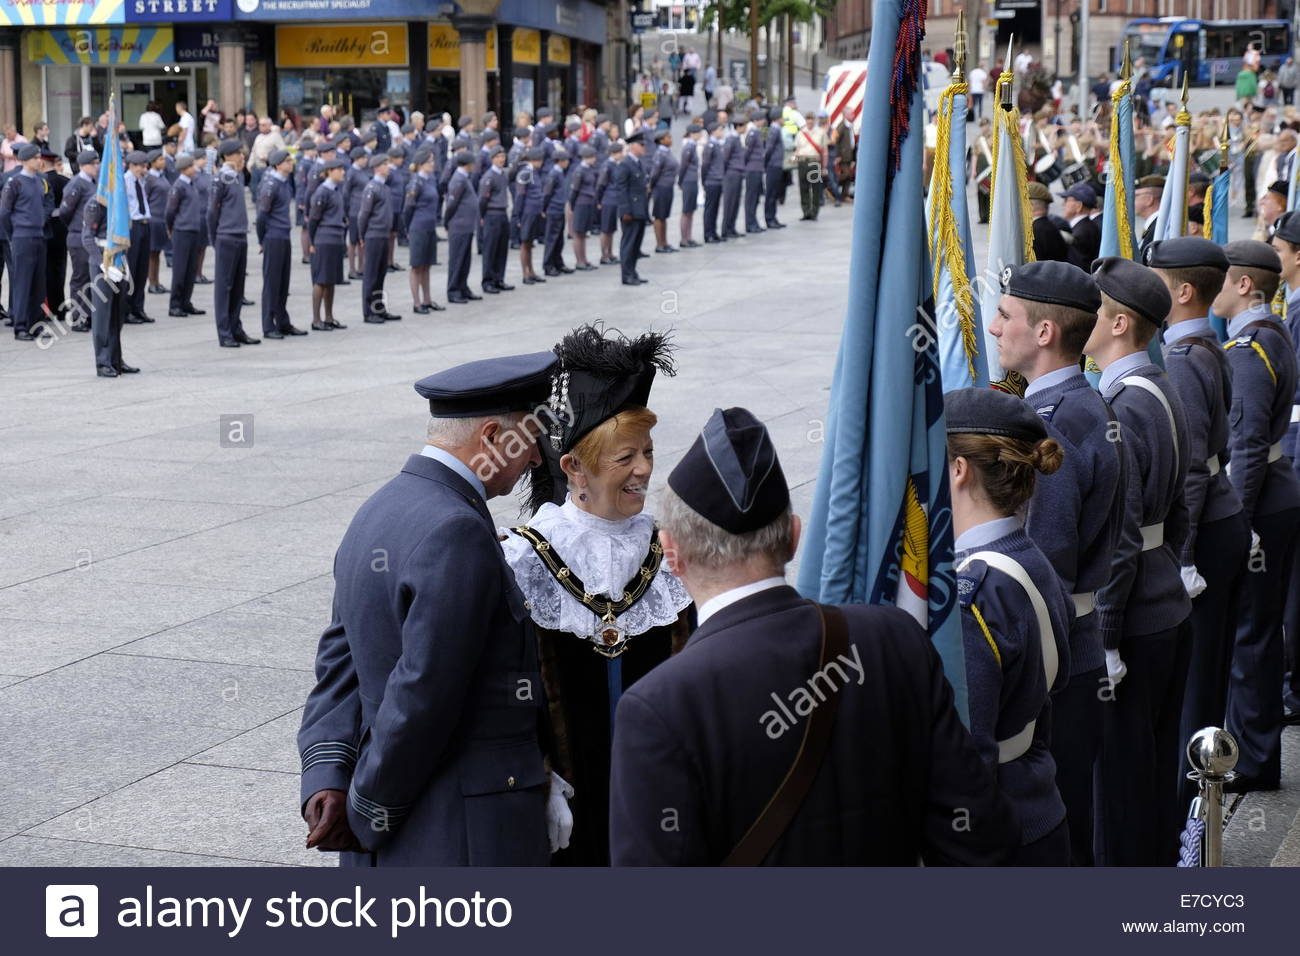 Nottingham, UK, 14 September 2014, Battle of Britain Sunday parade - Old Market Square Nottingham  Sheriff of Nottingham, - Stock Image